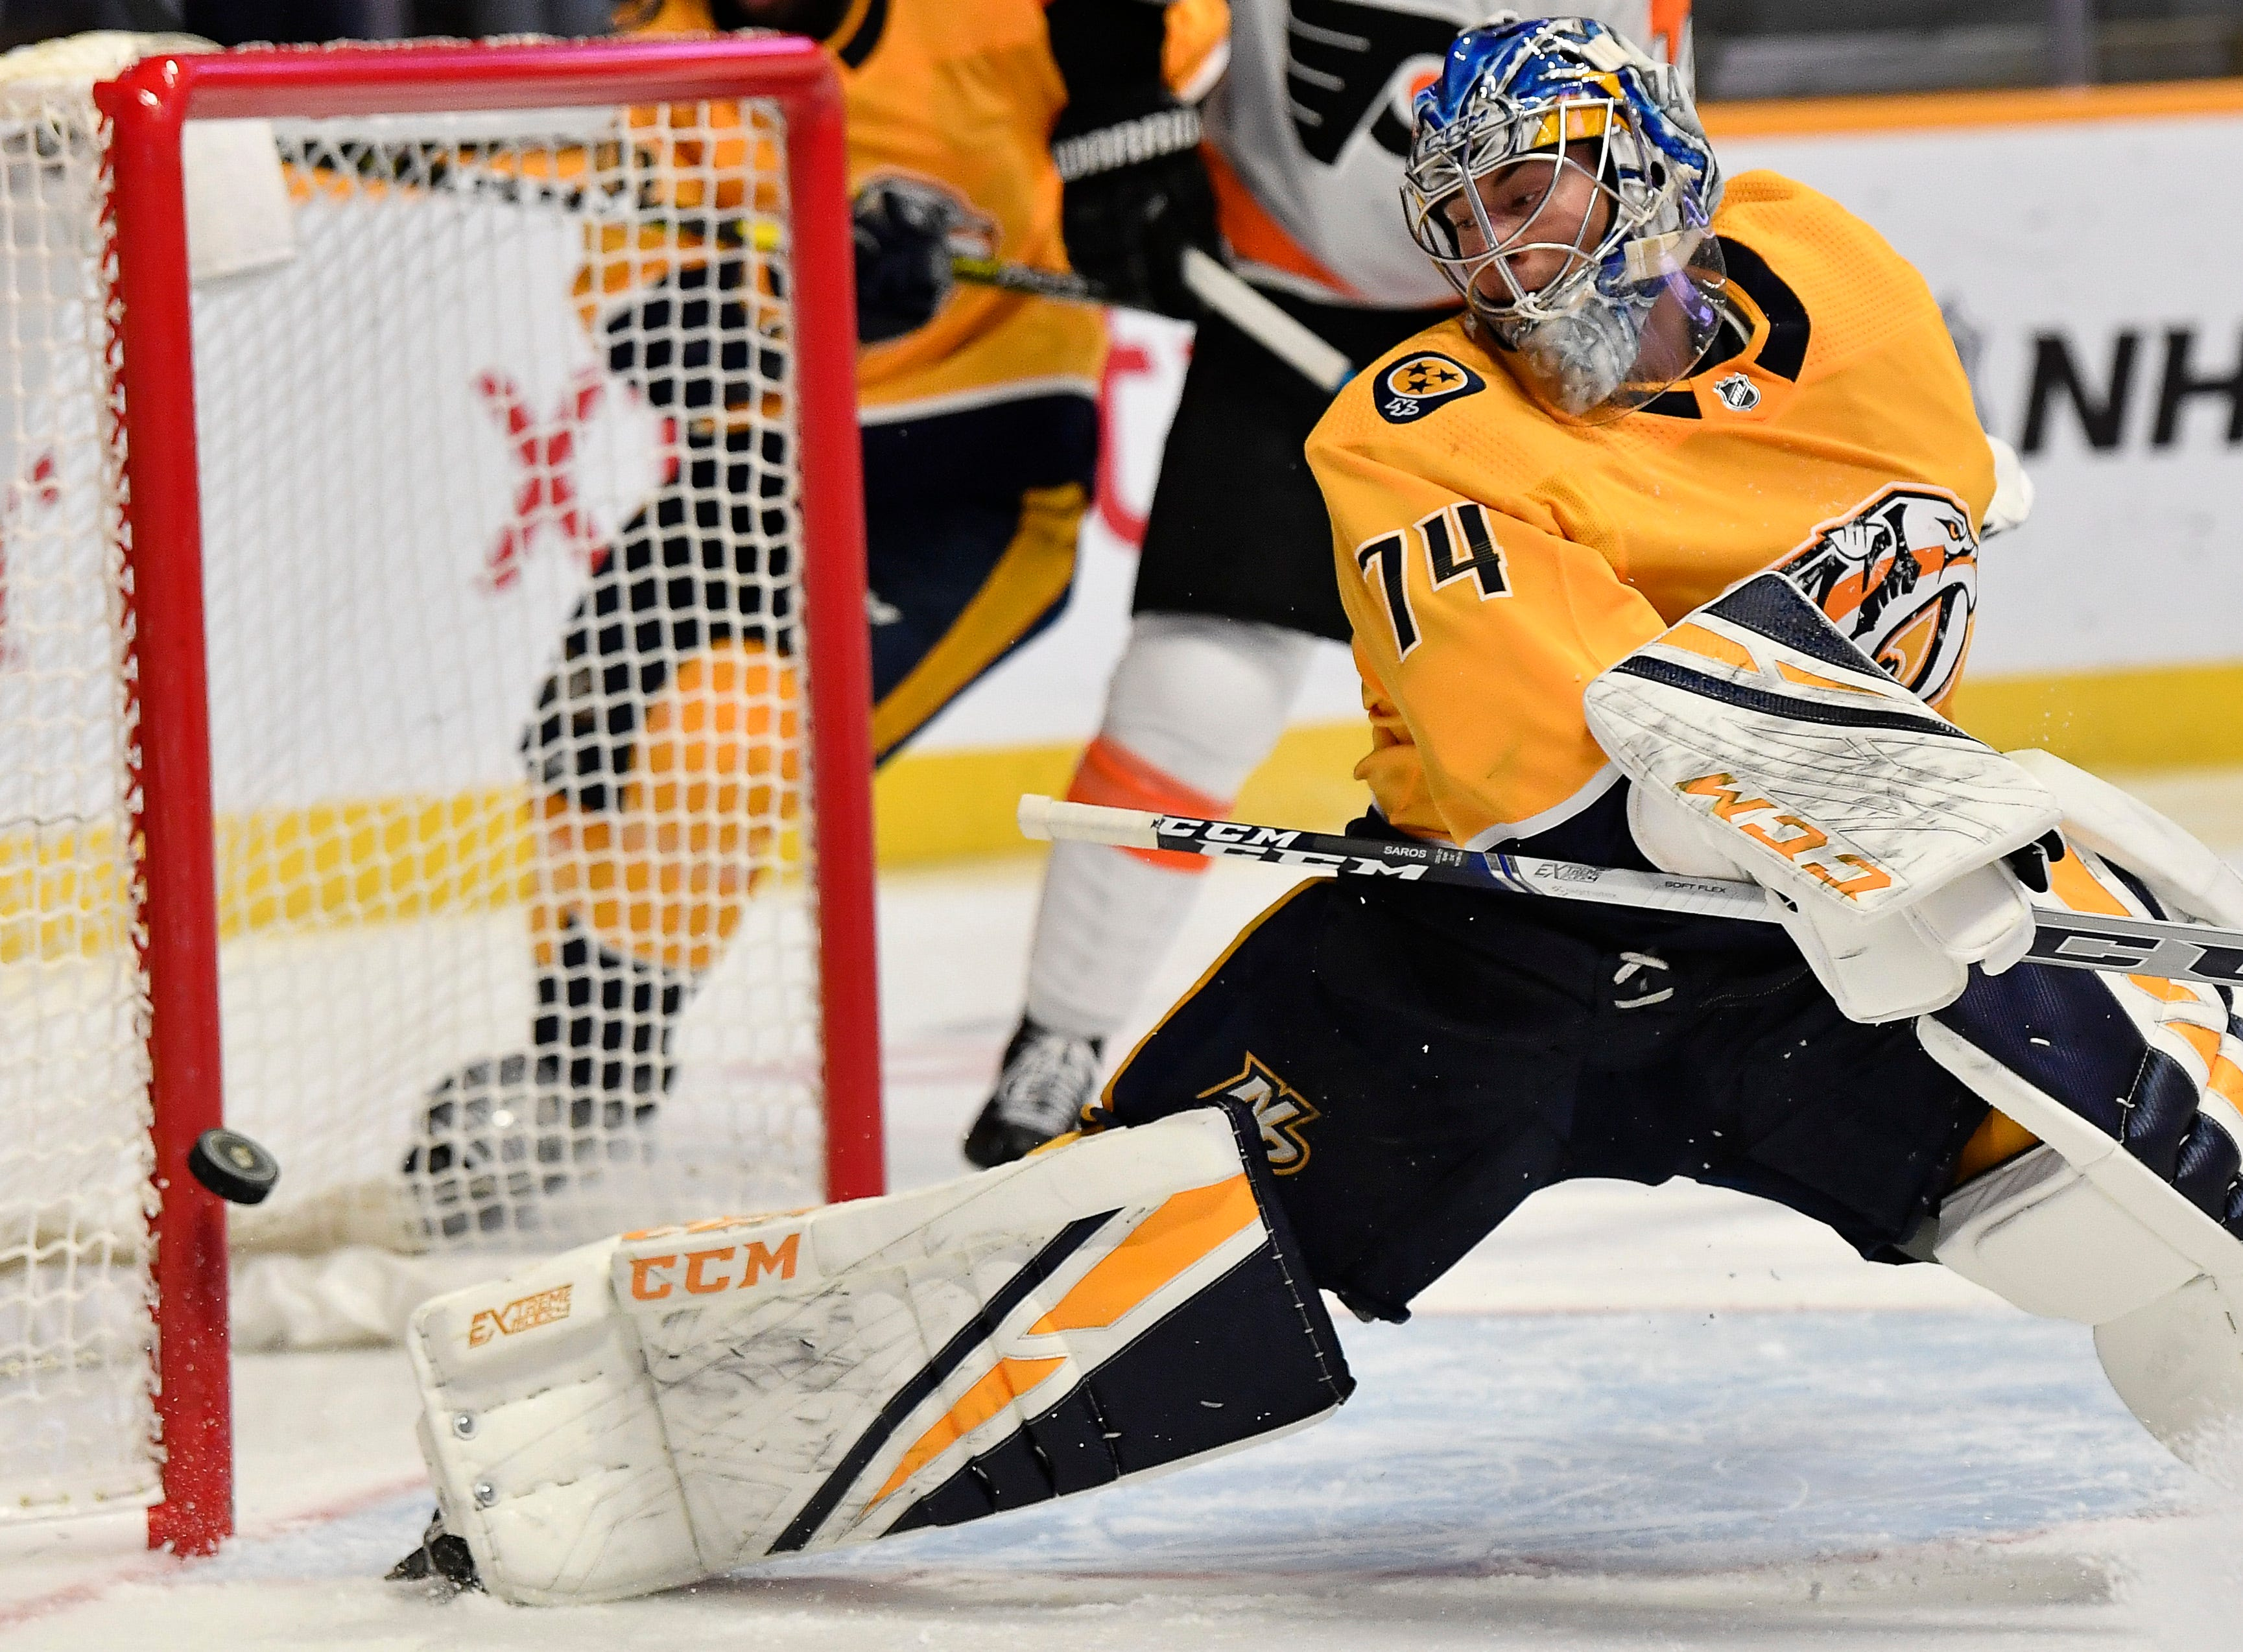 Predators goaltender Juuse Saros (74) blocks a shot on goal during the second period against the Flyers at Bridgestone Arena Tuesday, Jan. 1, 2019, in Nashville, Tenn.